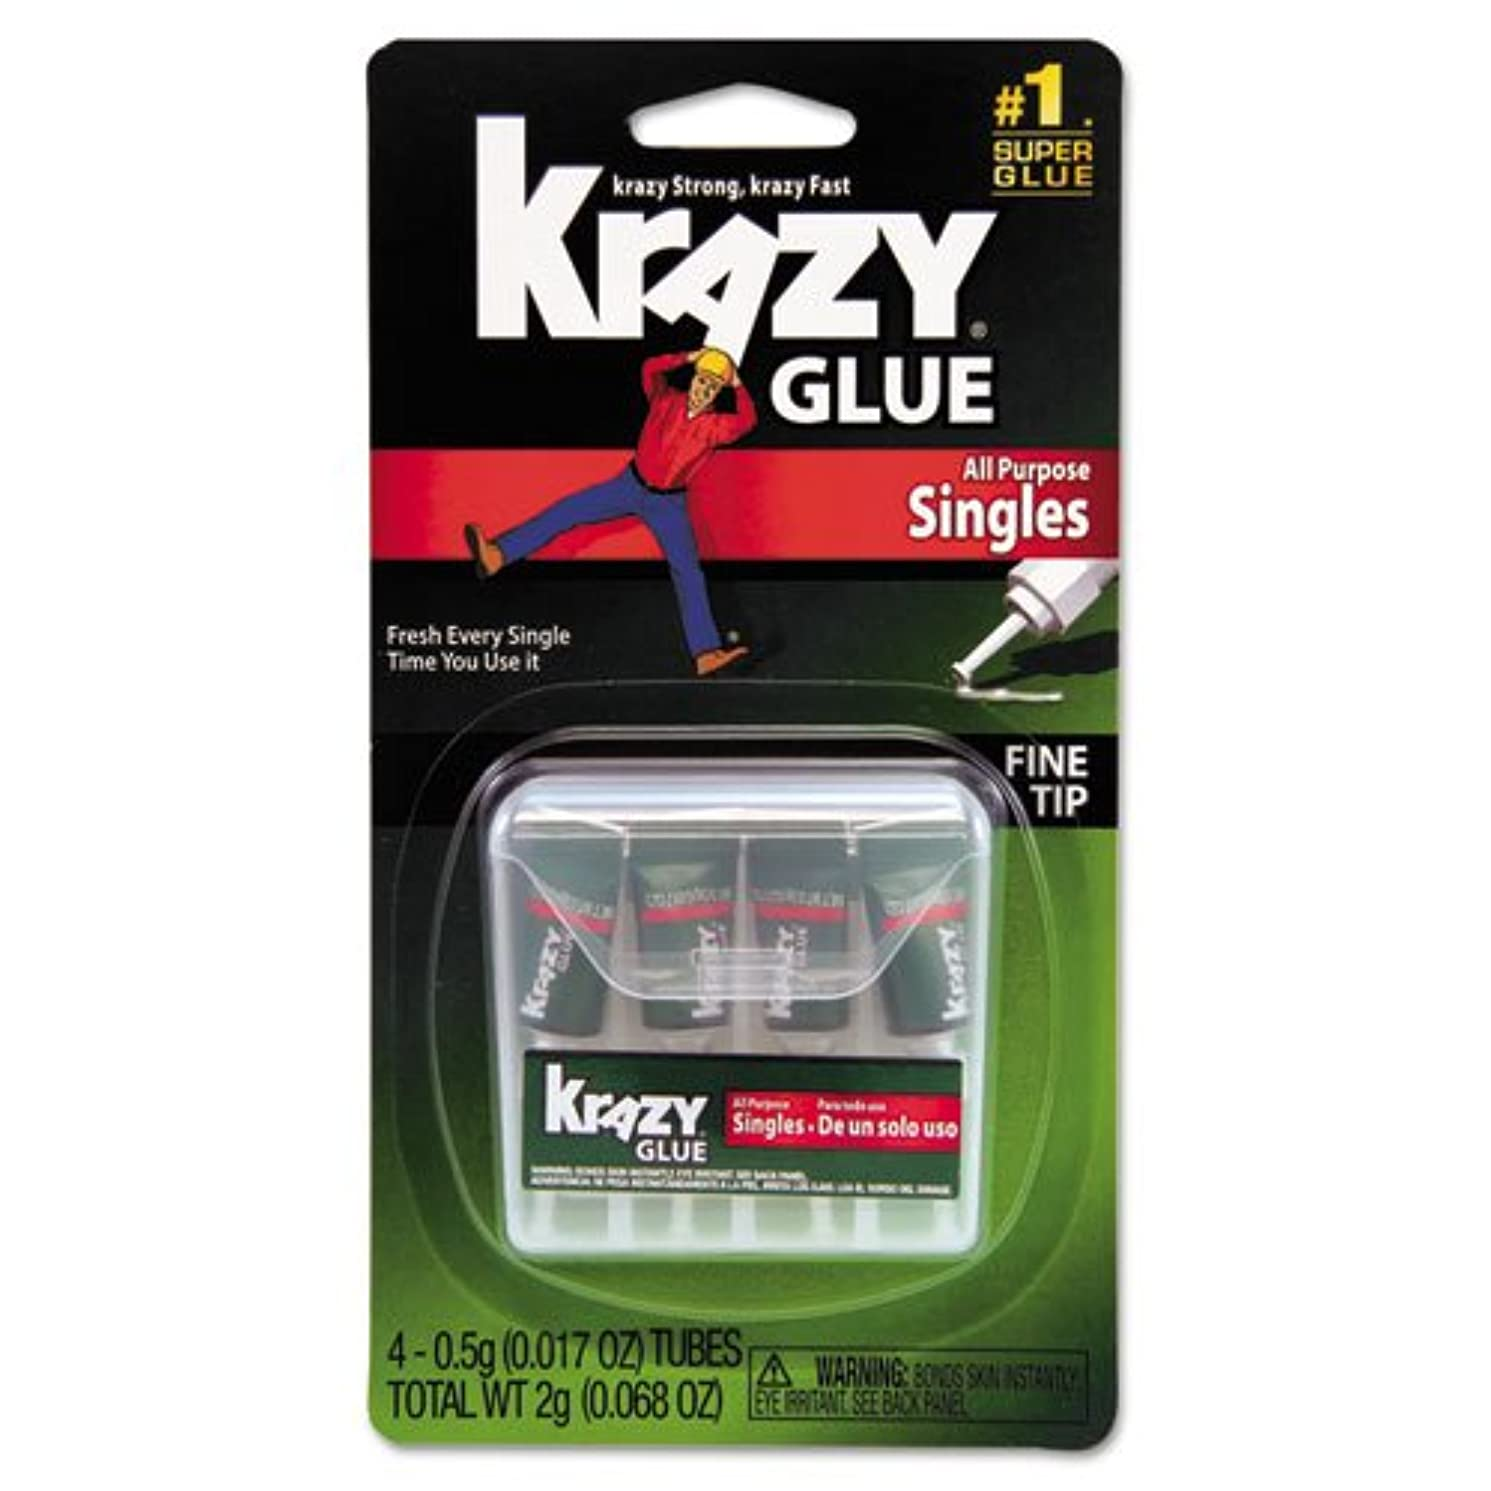 Krazy Glue Products - Krazy Glue - Krazy Glue Single-Use Tubes w/Storage Case, 4/Pack - Sold As 1 Pack - All-purpose formula for glass, metal, plastic, wood and rubber in single-use applicators that offer convenience and ease of use for home and office. - Just twist the self-piercing cap to open, use and discard. - Convenient storage case. - Dries clear. -